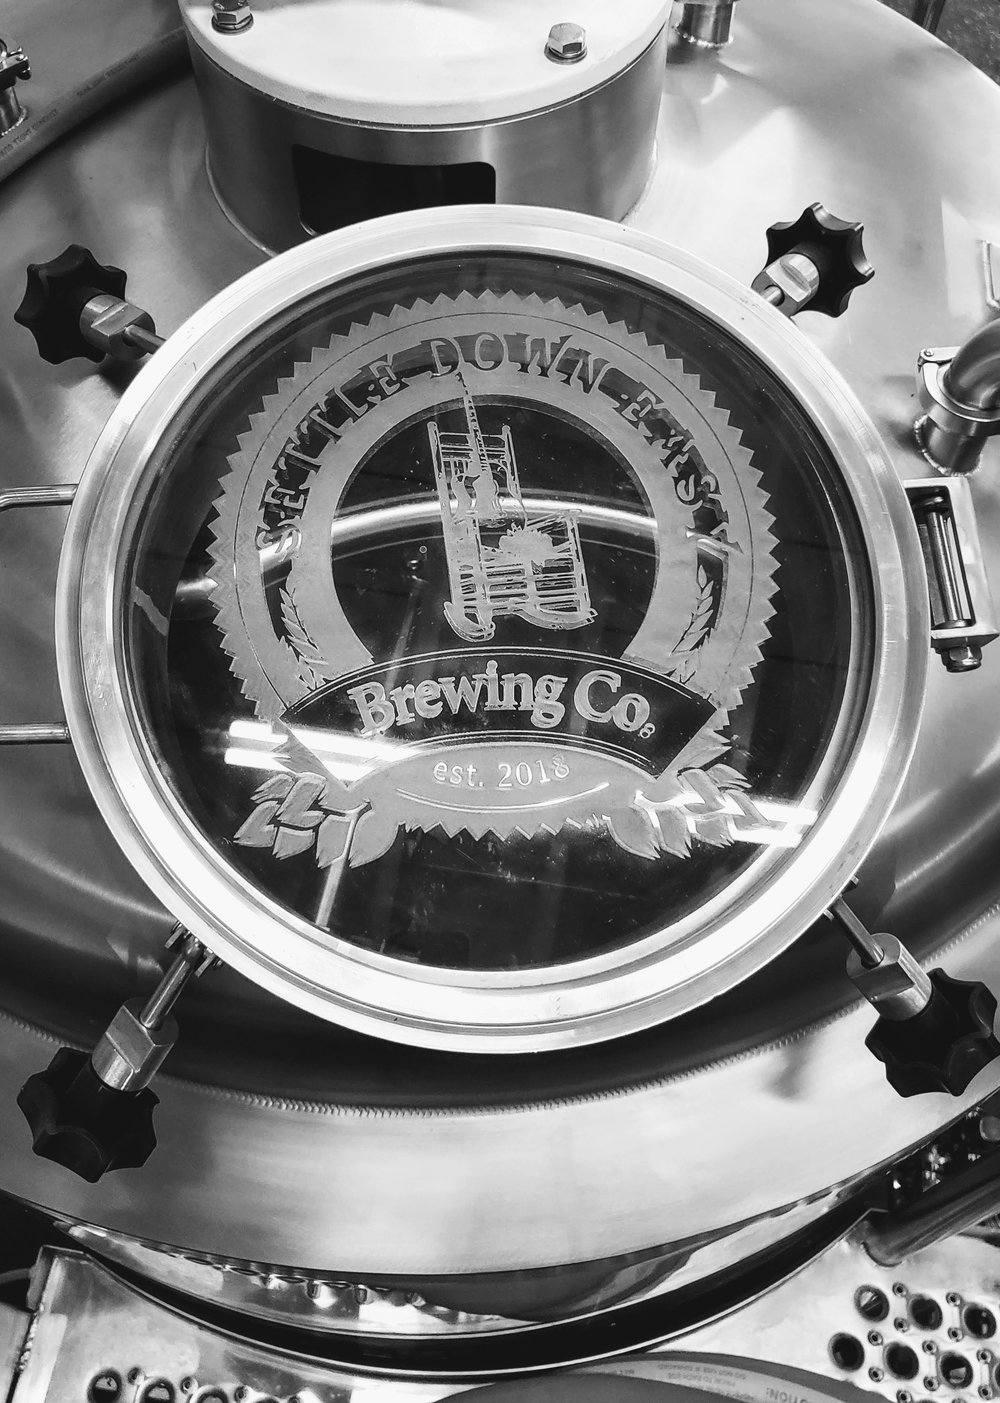 Brewery Logo on Tank.jpg